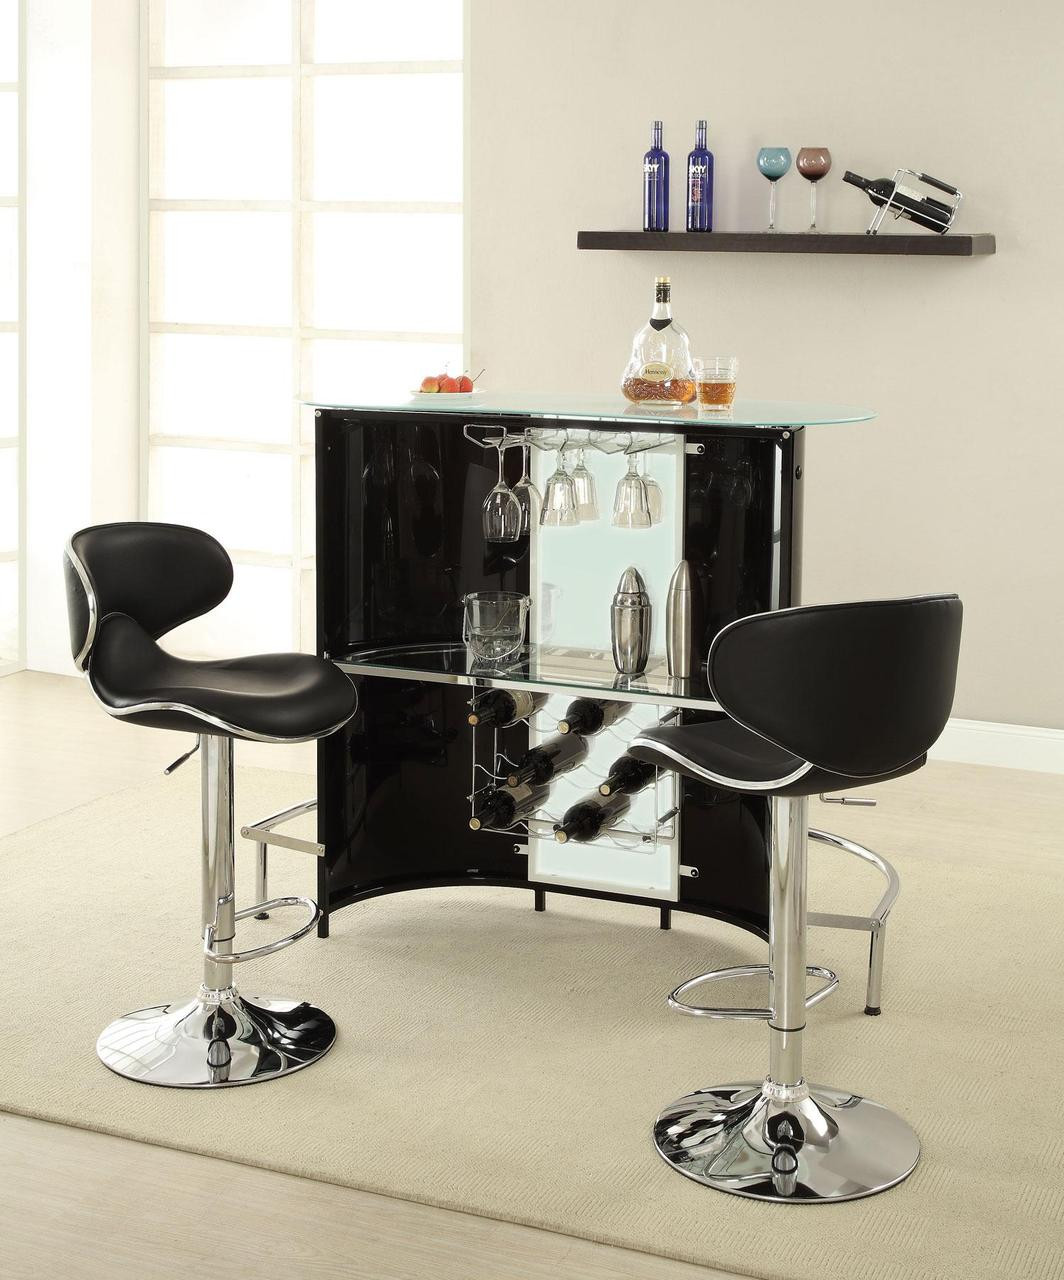 Bar Counter: Gervaise Black White Chrome Bar Counter